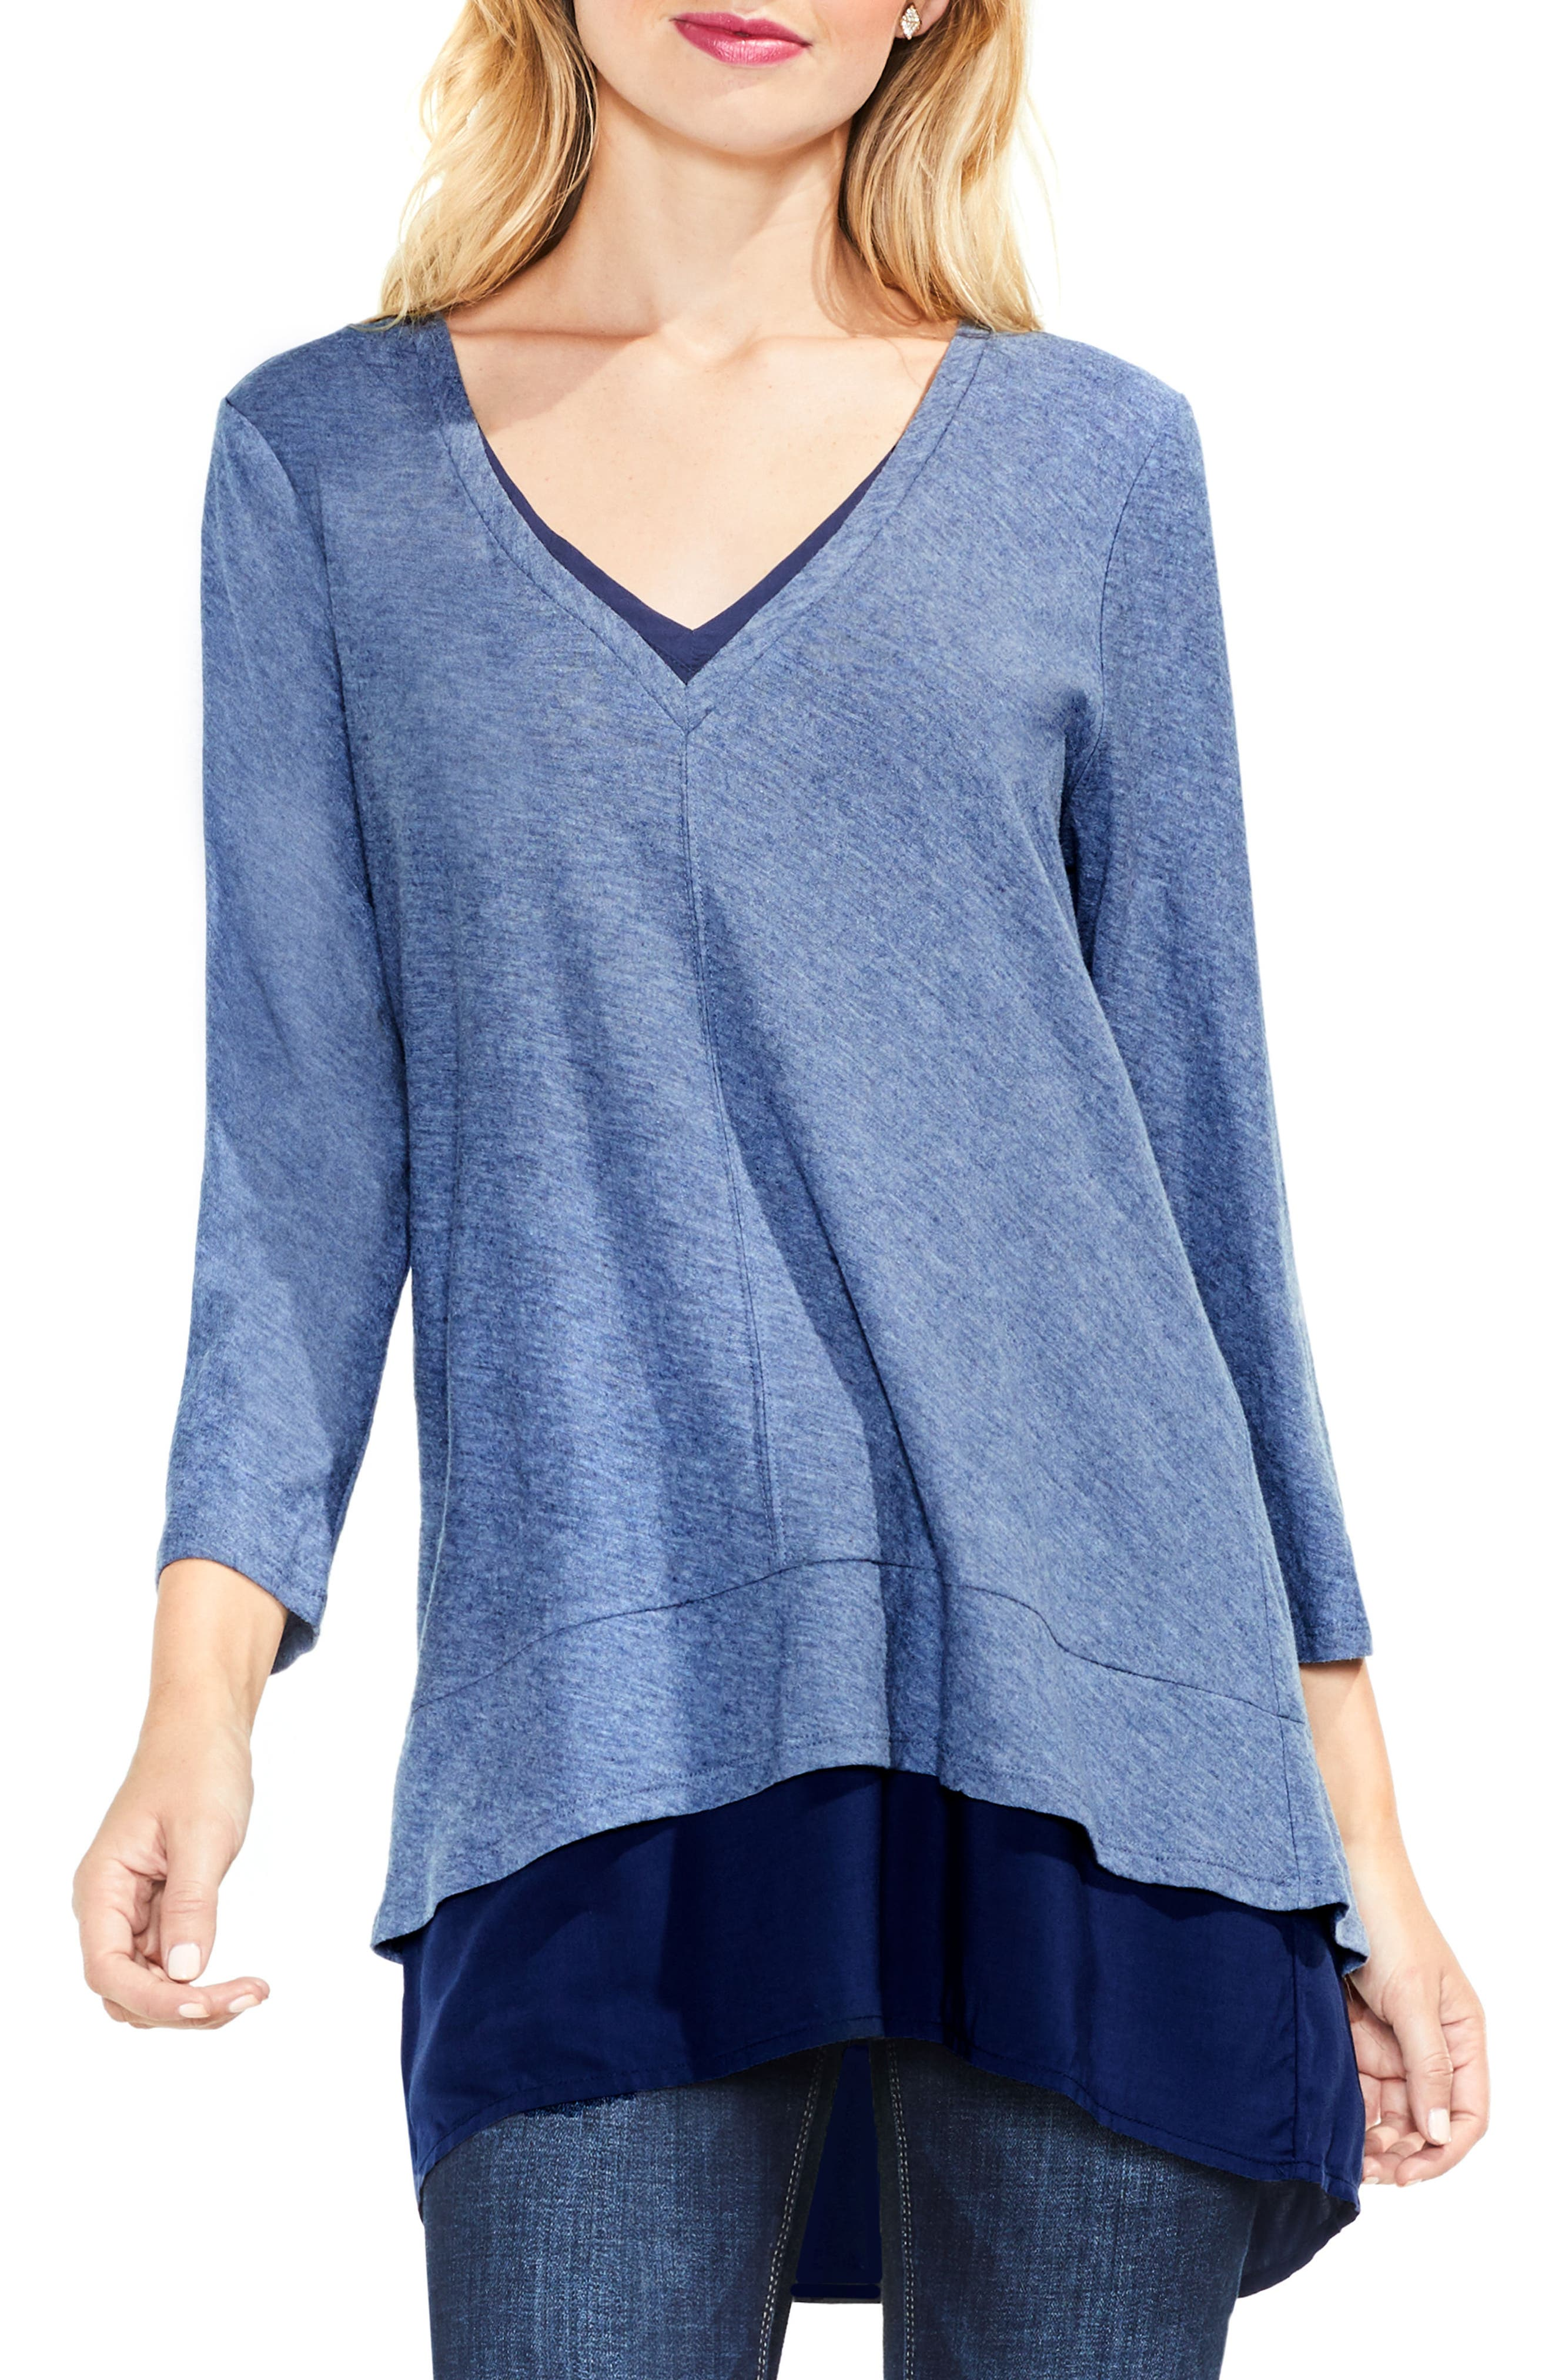 Alternate Image 1 Selected - Two by Vince Camuto Mixed Media Tunic (Regular & Petite)